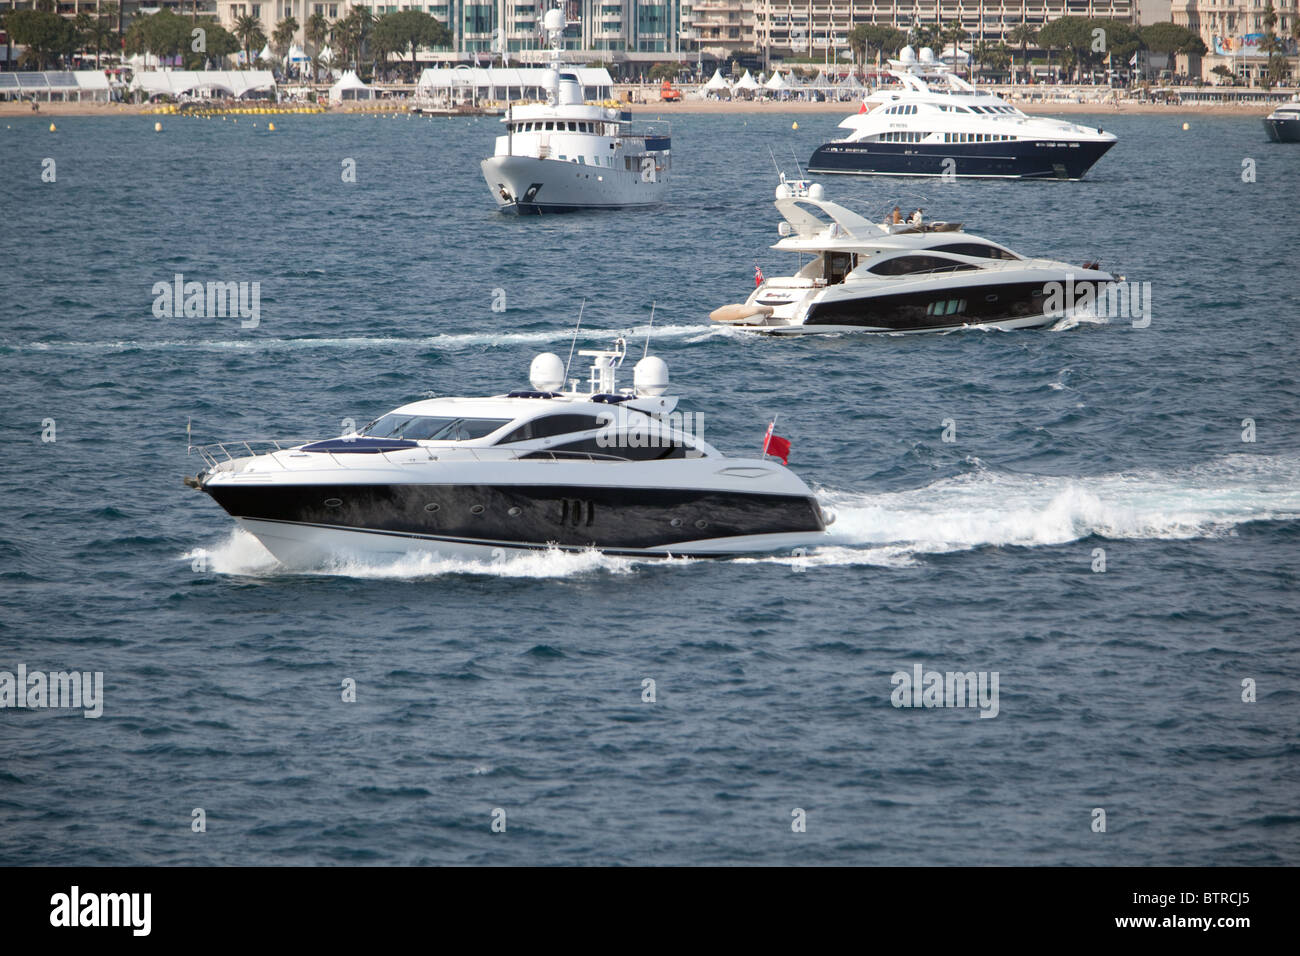 A plethora of private and charter yachts attending Cannes Film Festival France. - Stock Image